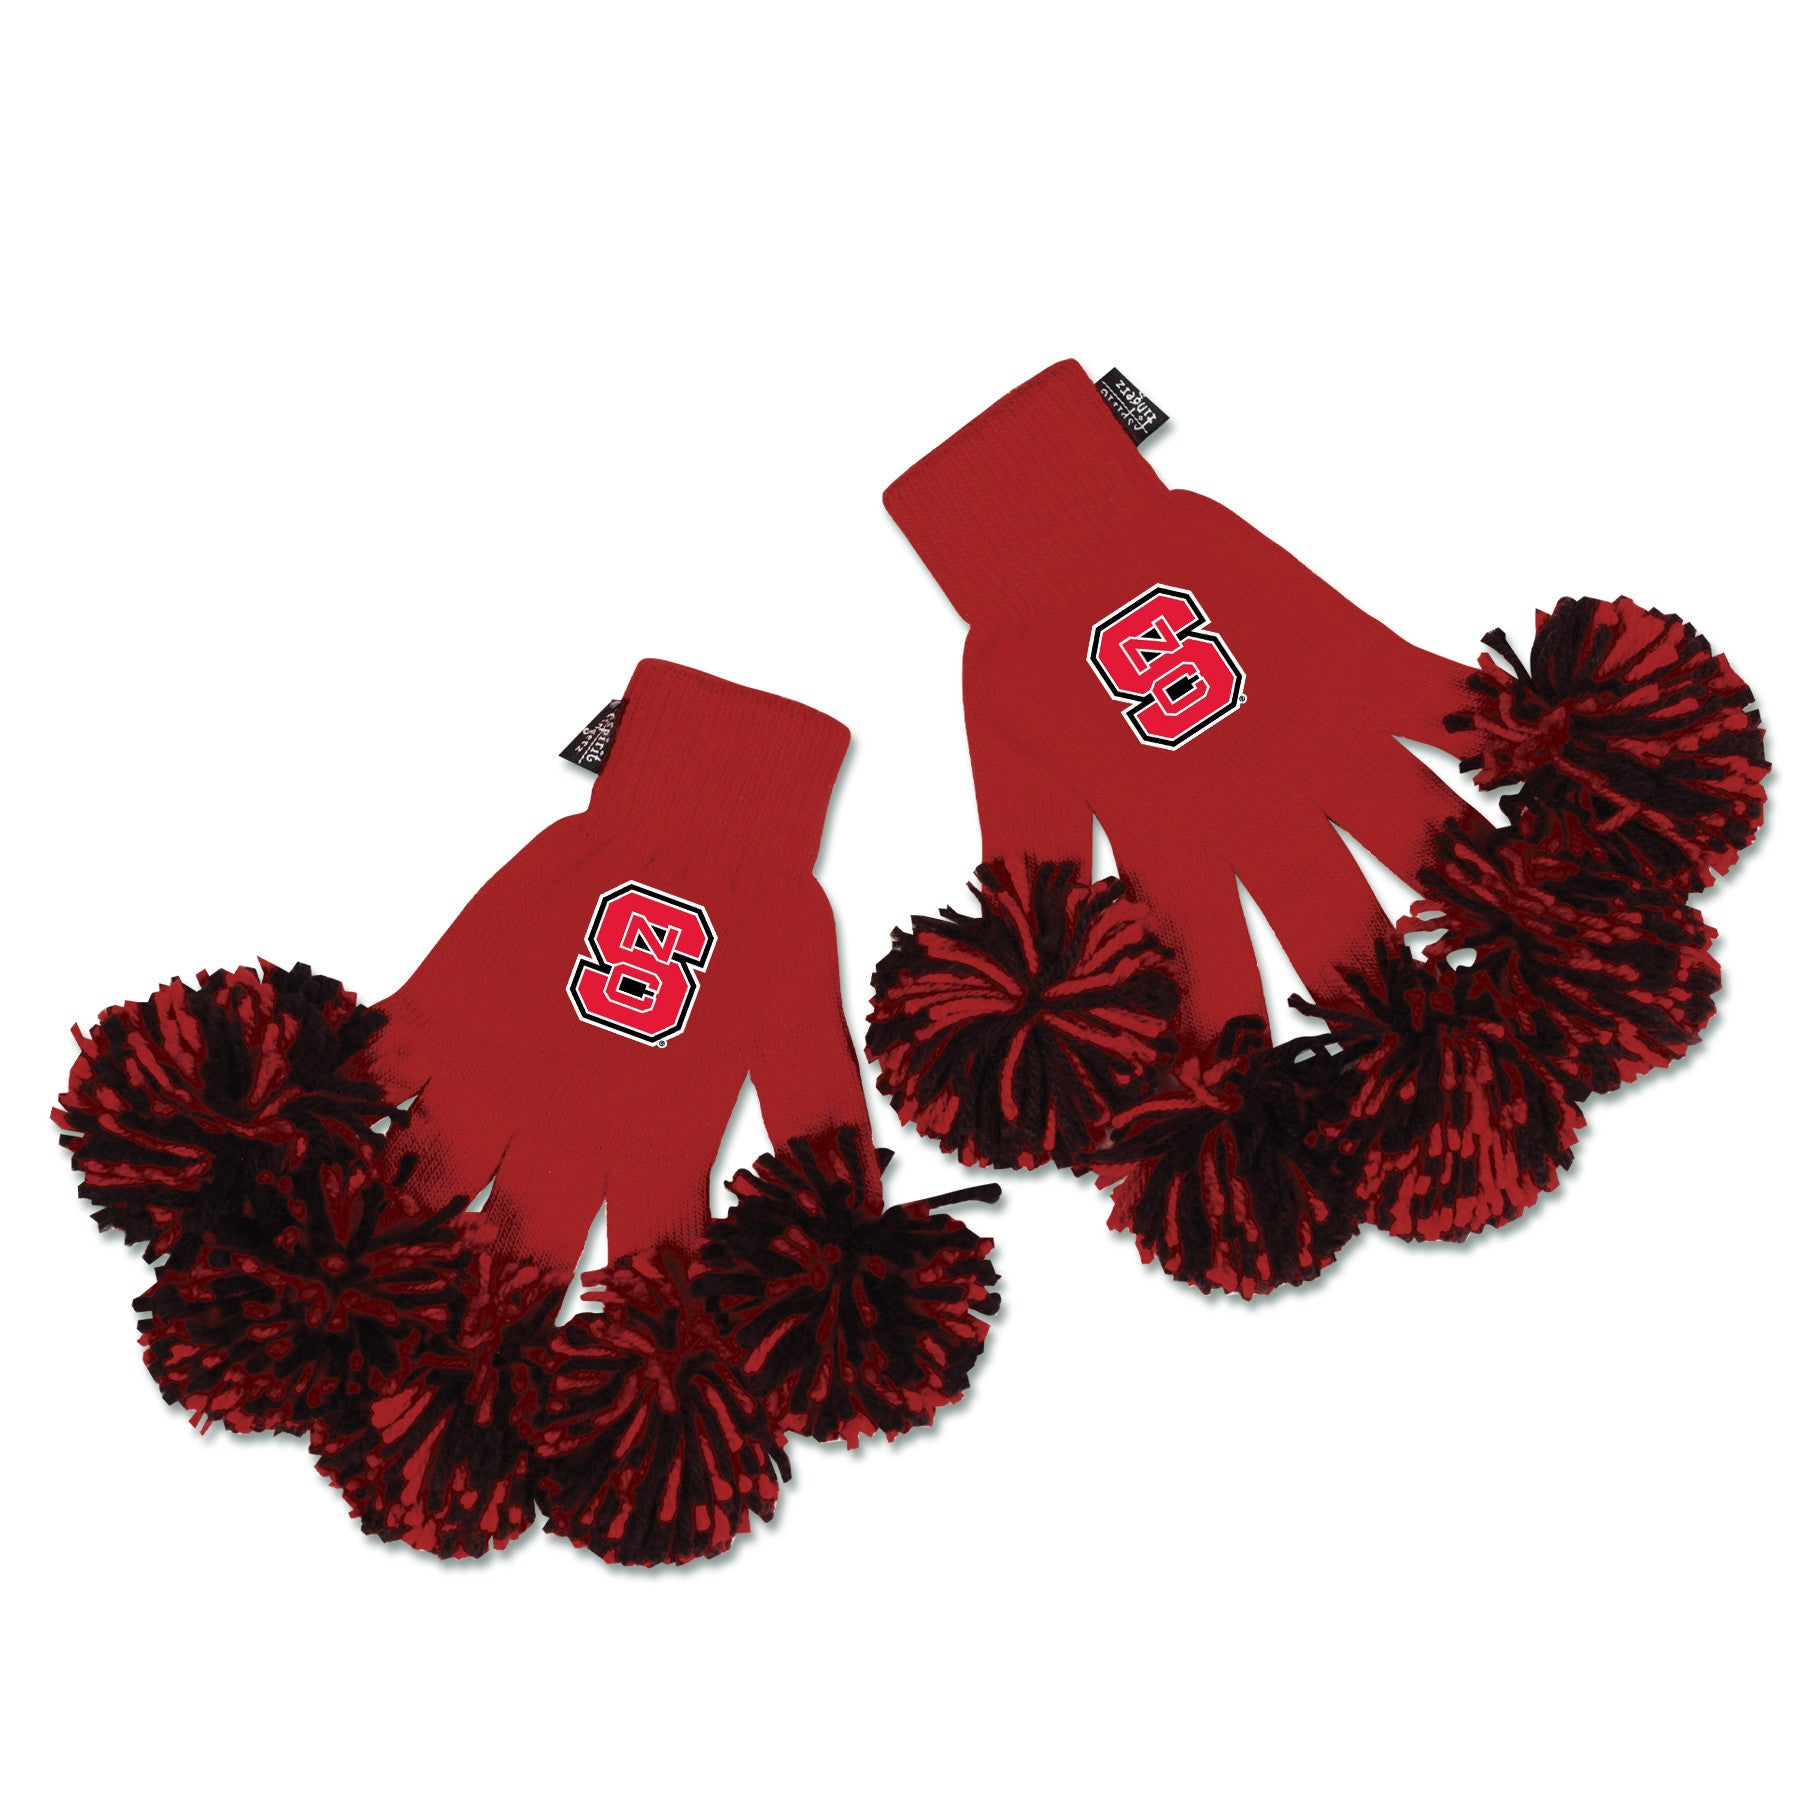 North Carolina State Wolfpack NCAA Spirit Fingerz Cheerleading Pom-Pom Gloves